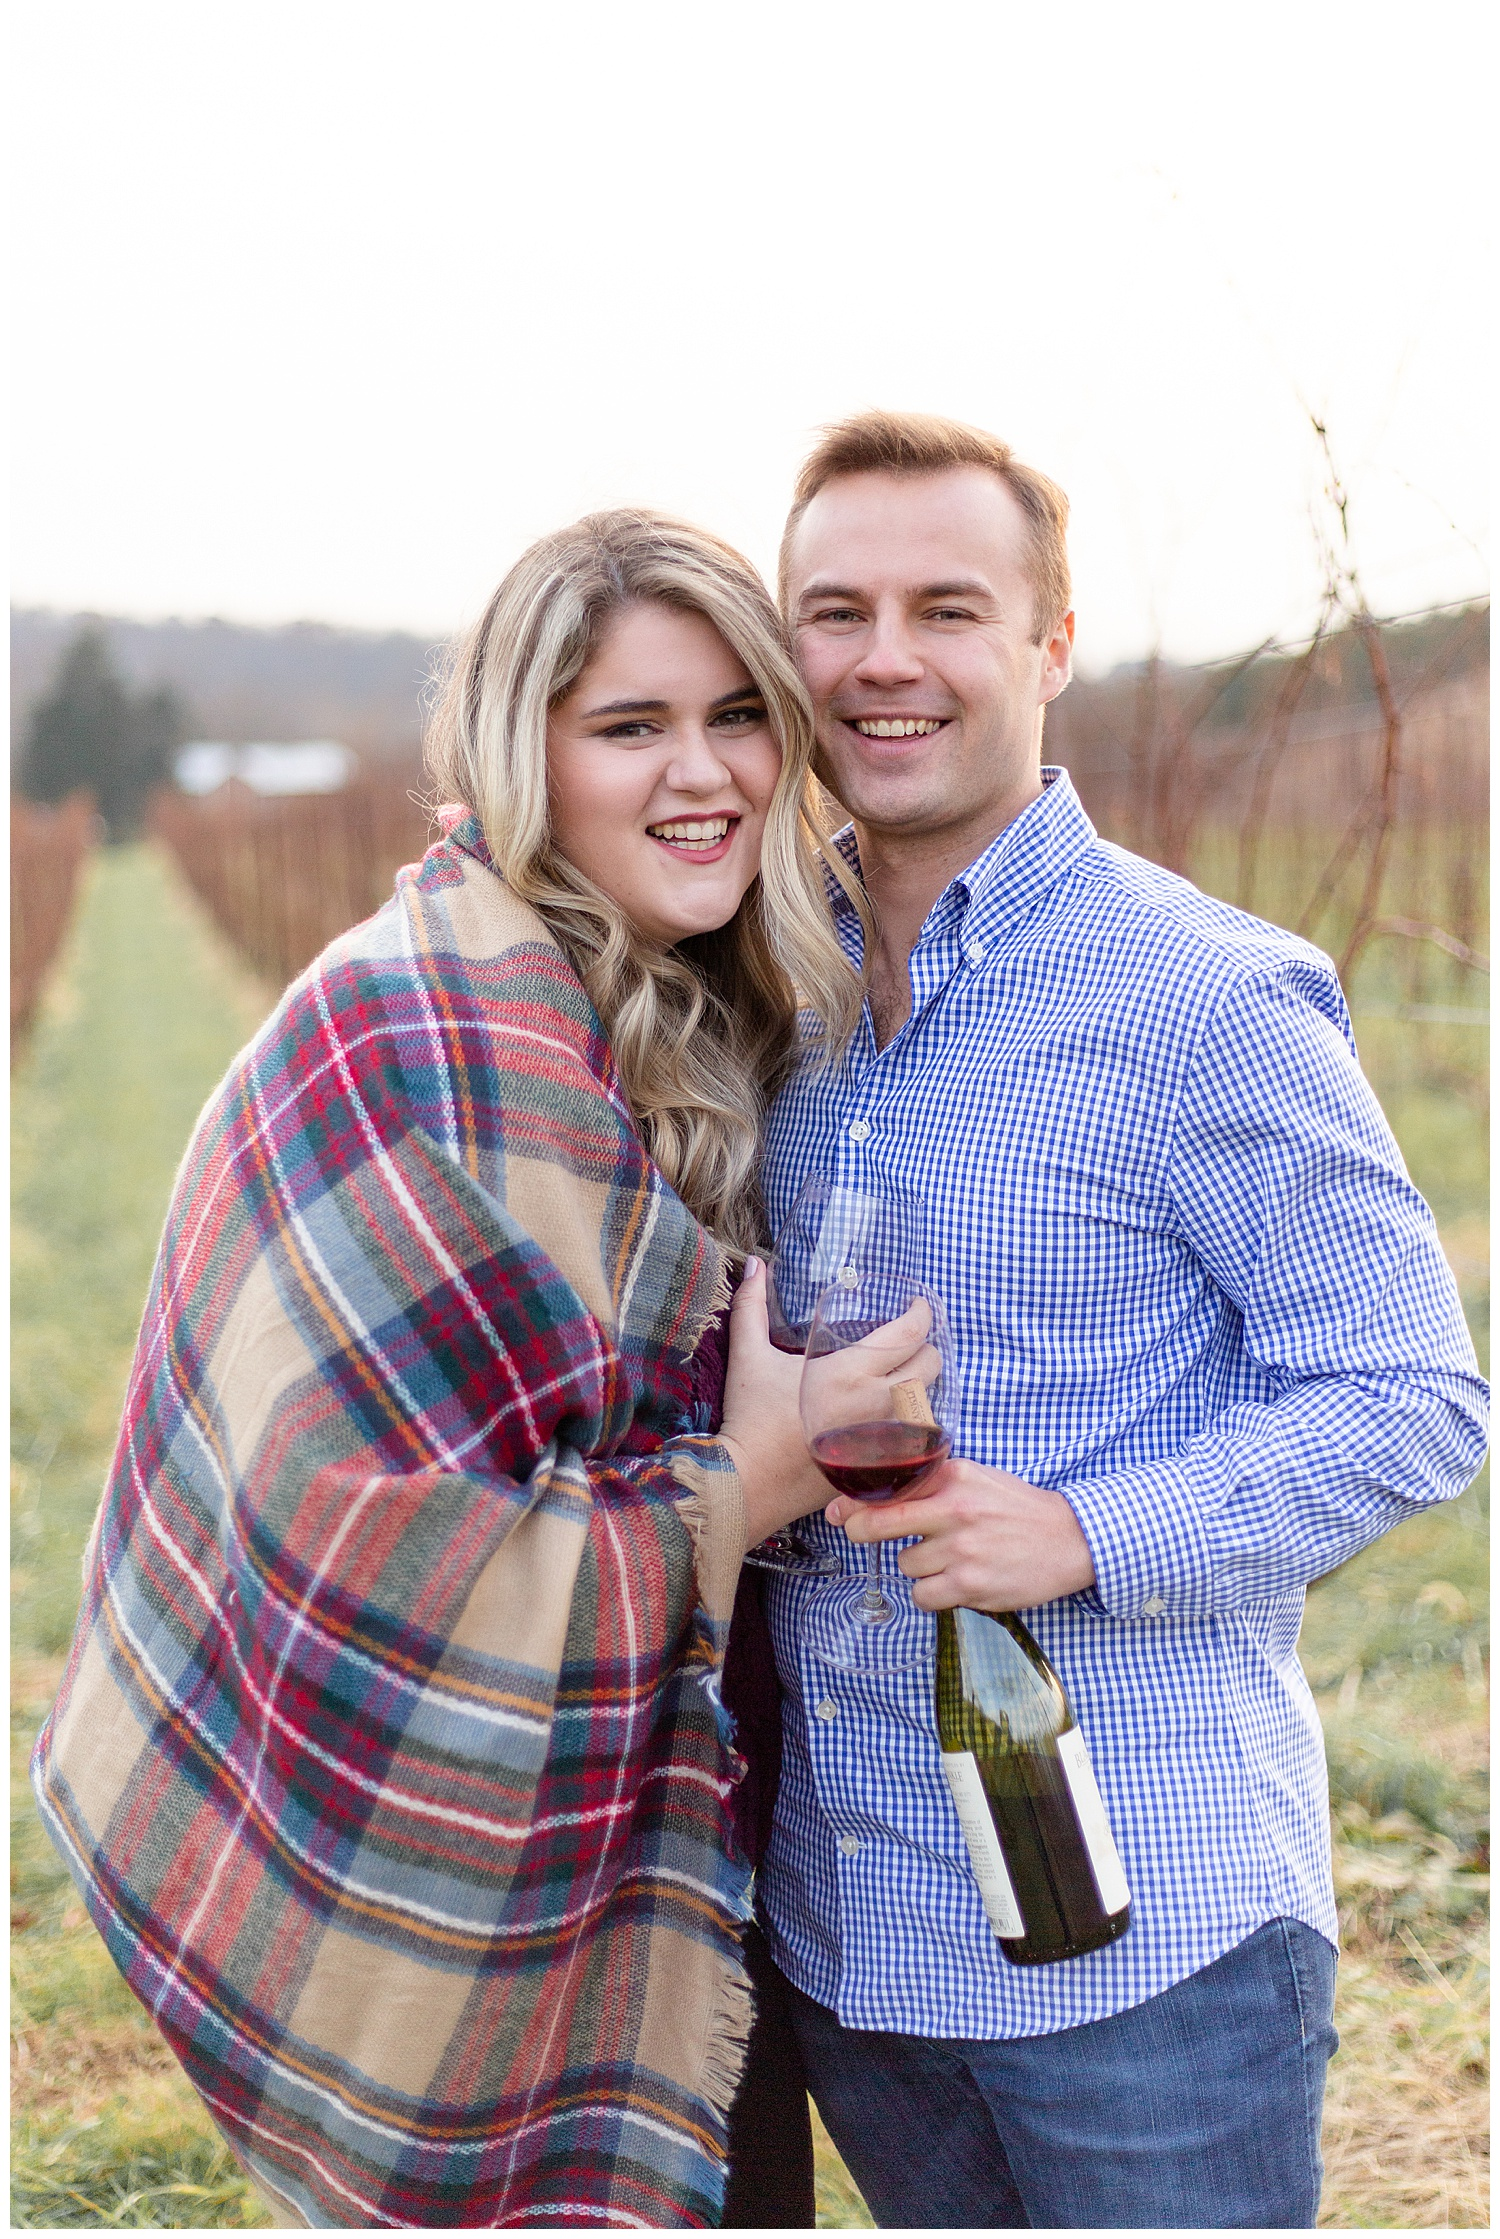 emily-belson-photography-black-ankle-winery-engagement-03.jpg